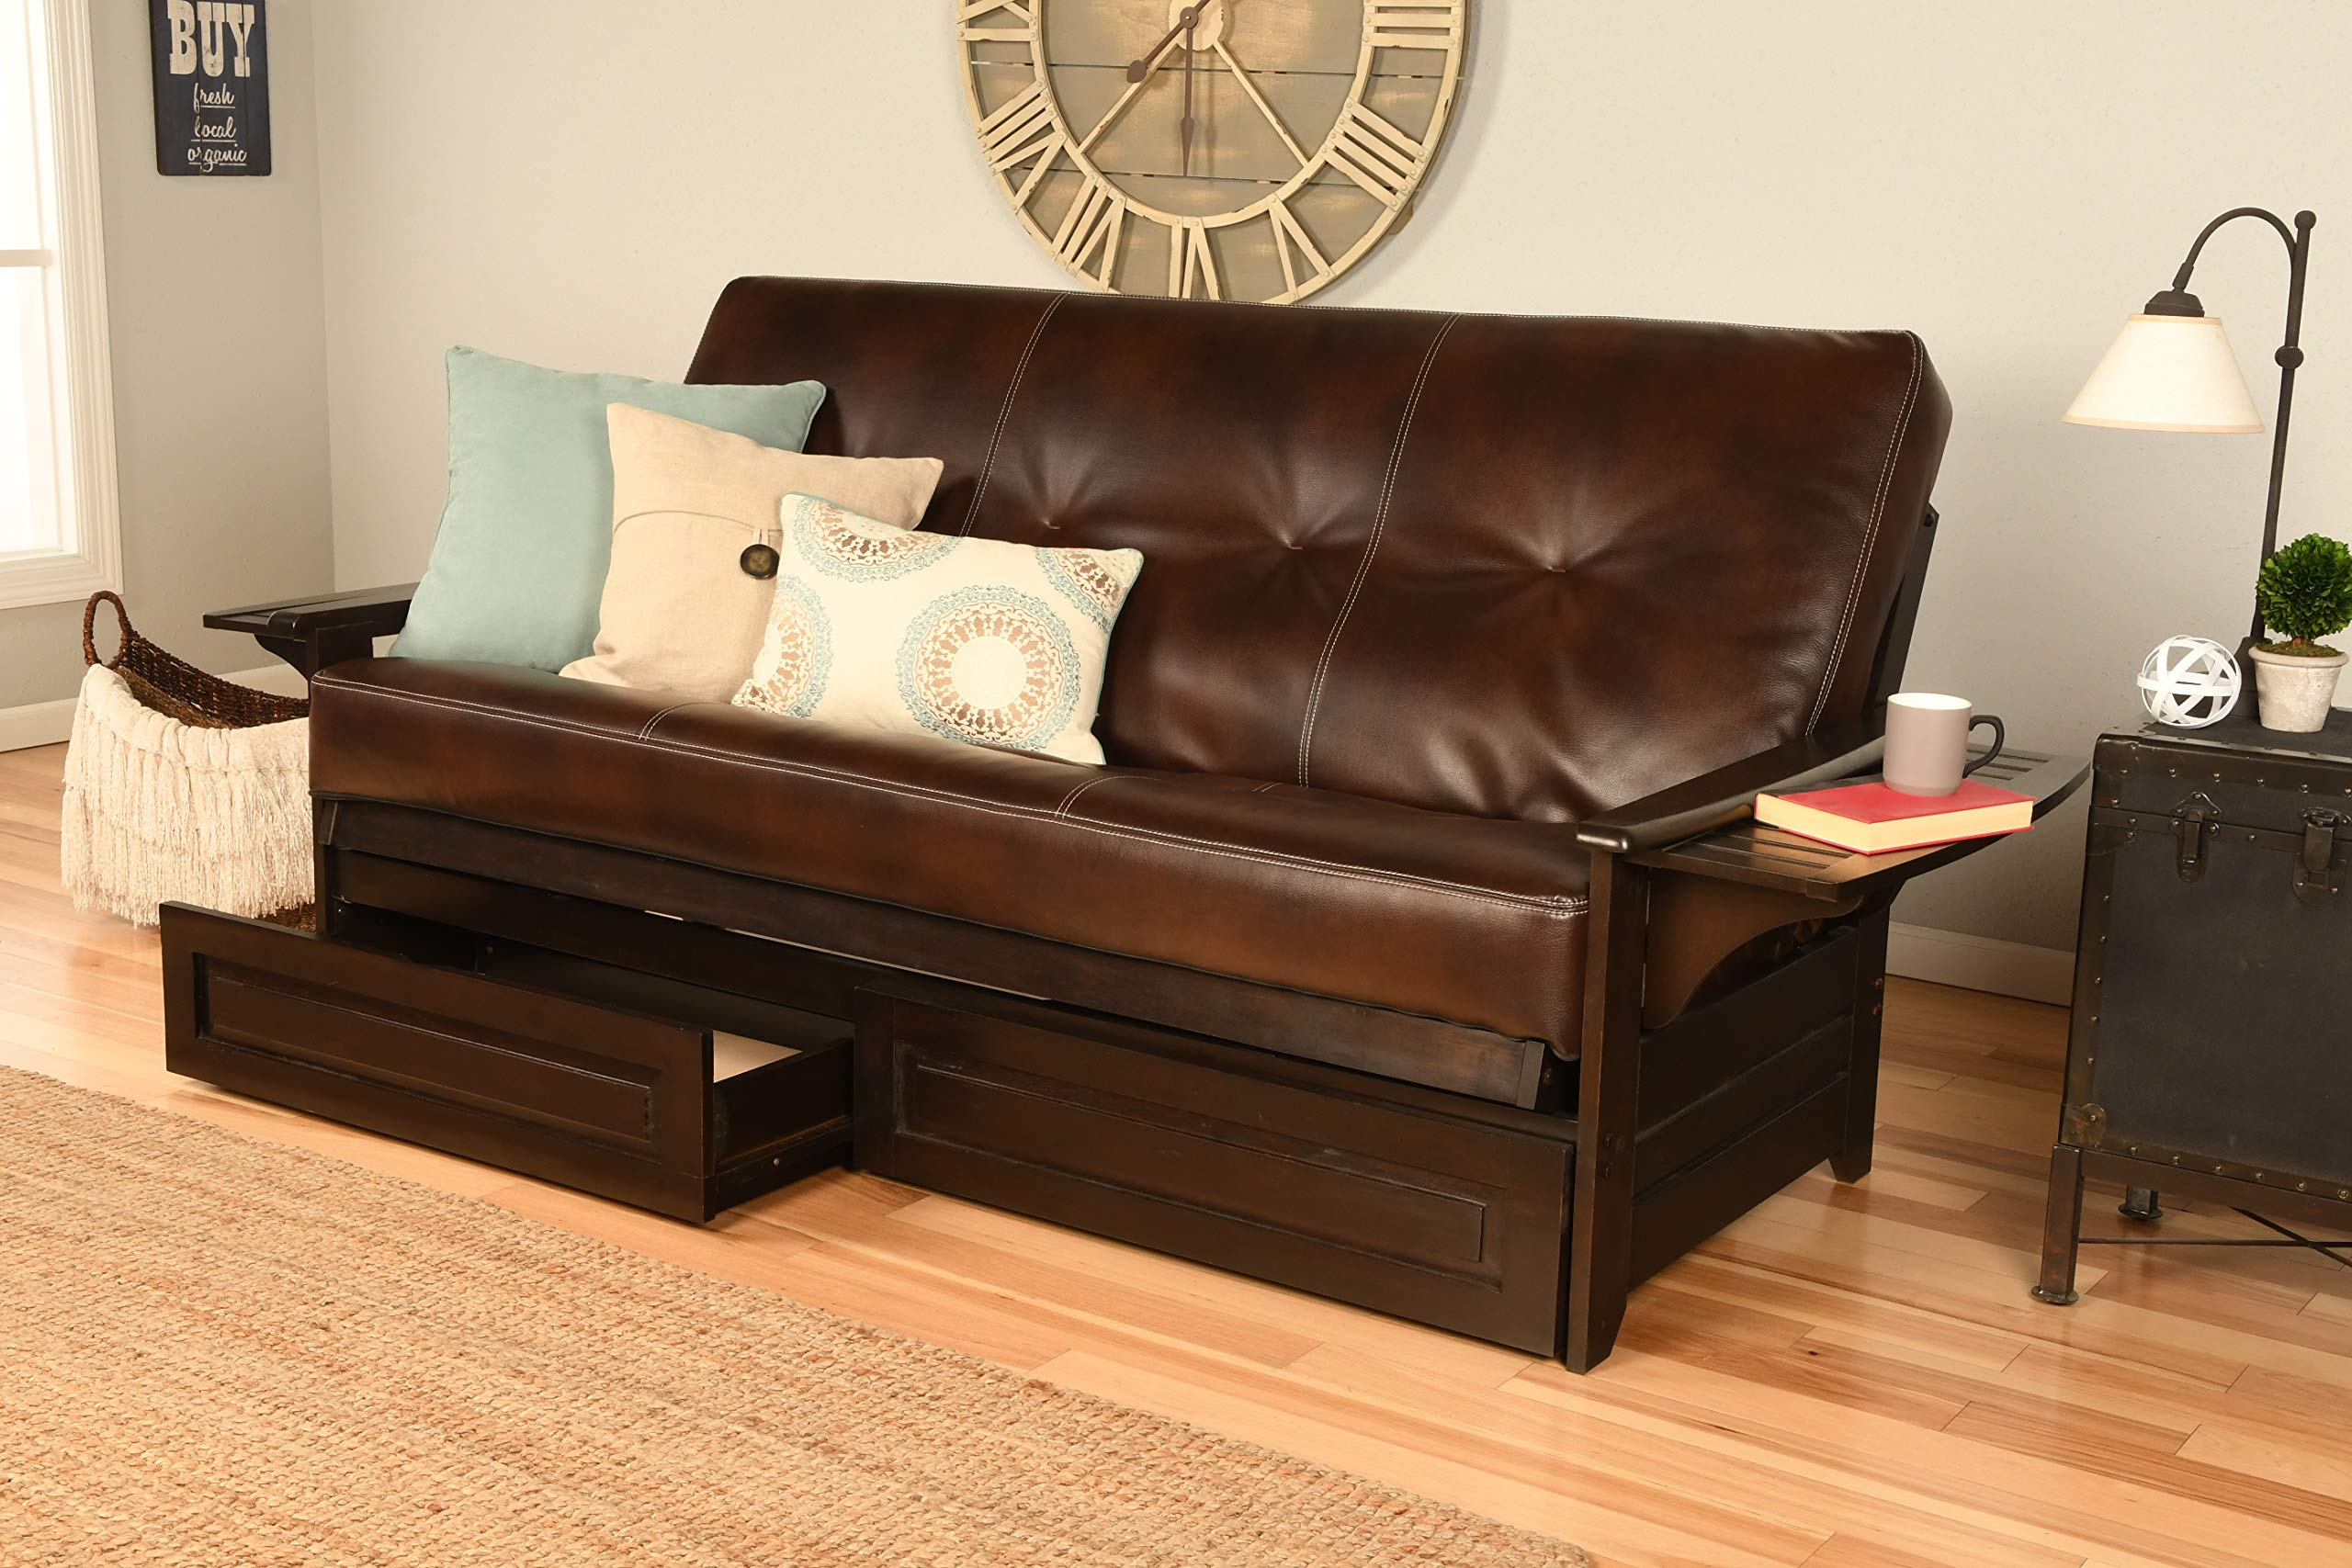 Kodiak Futons Phoenix Full Size Futon in Espresso Finish with Storage Drawers, Oregon Trail Java by Kodiak Futons